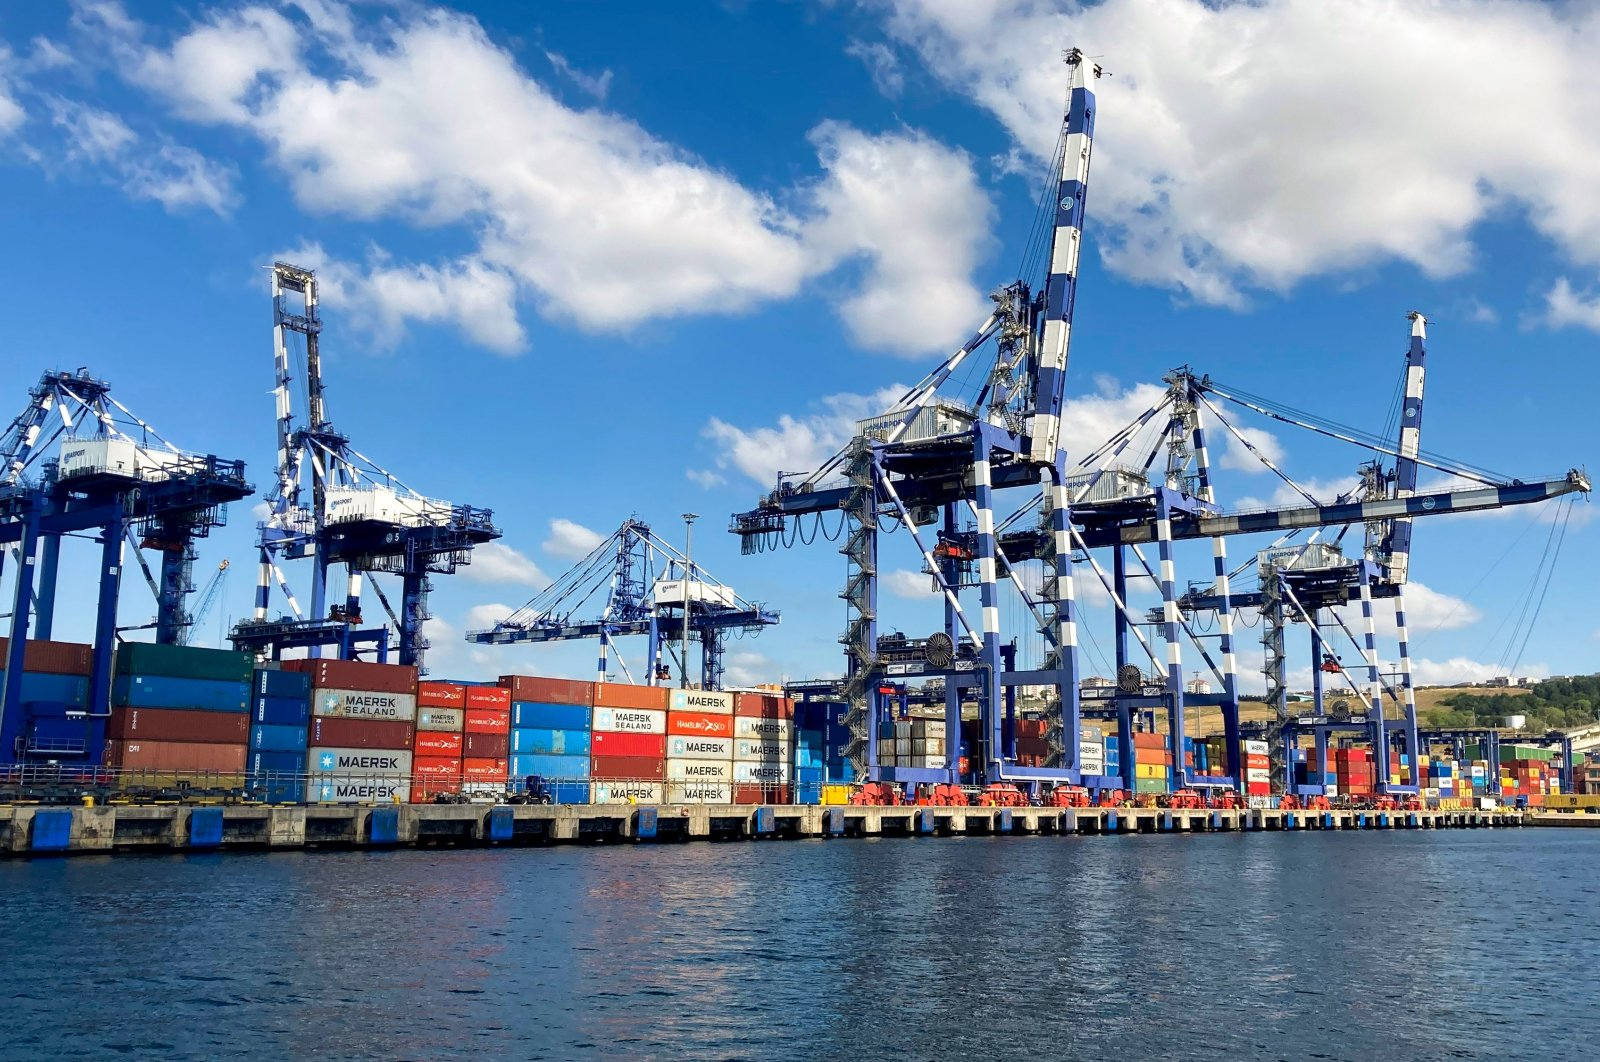 Containers carrying traded goods wait at the Port of Ambarlı, İstanbul, Turkey, July 17, 2020. (Shutterstock Photo)